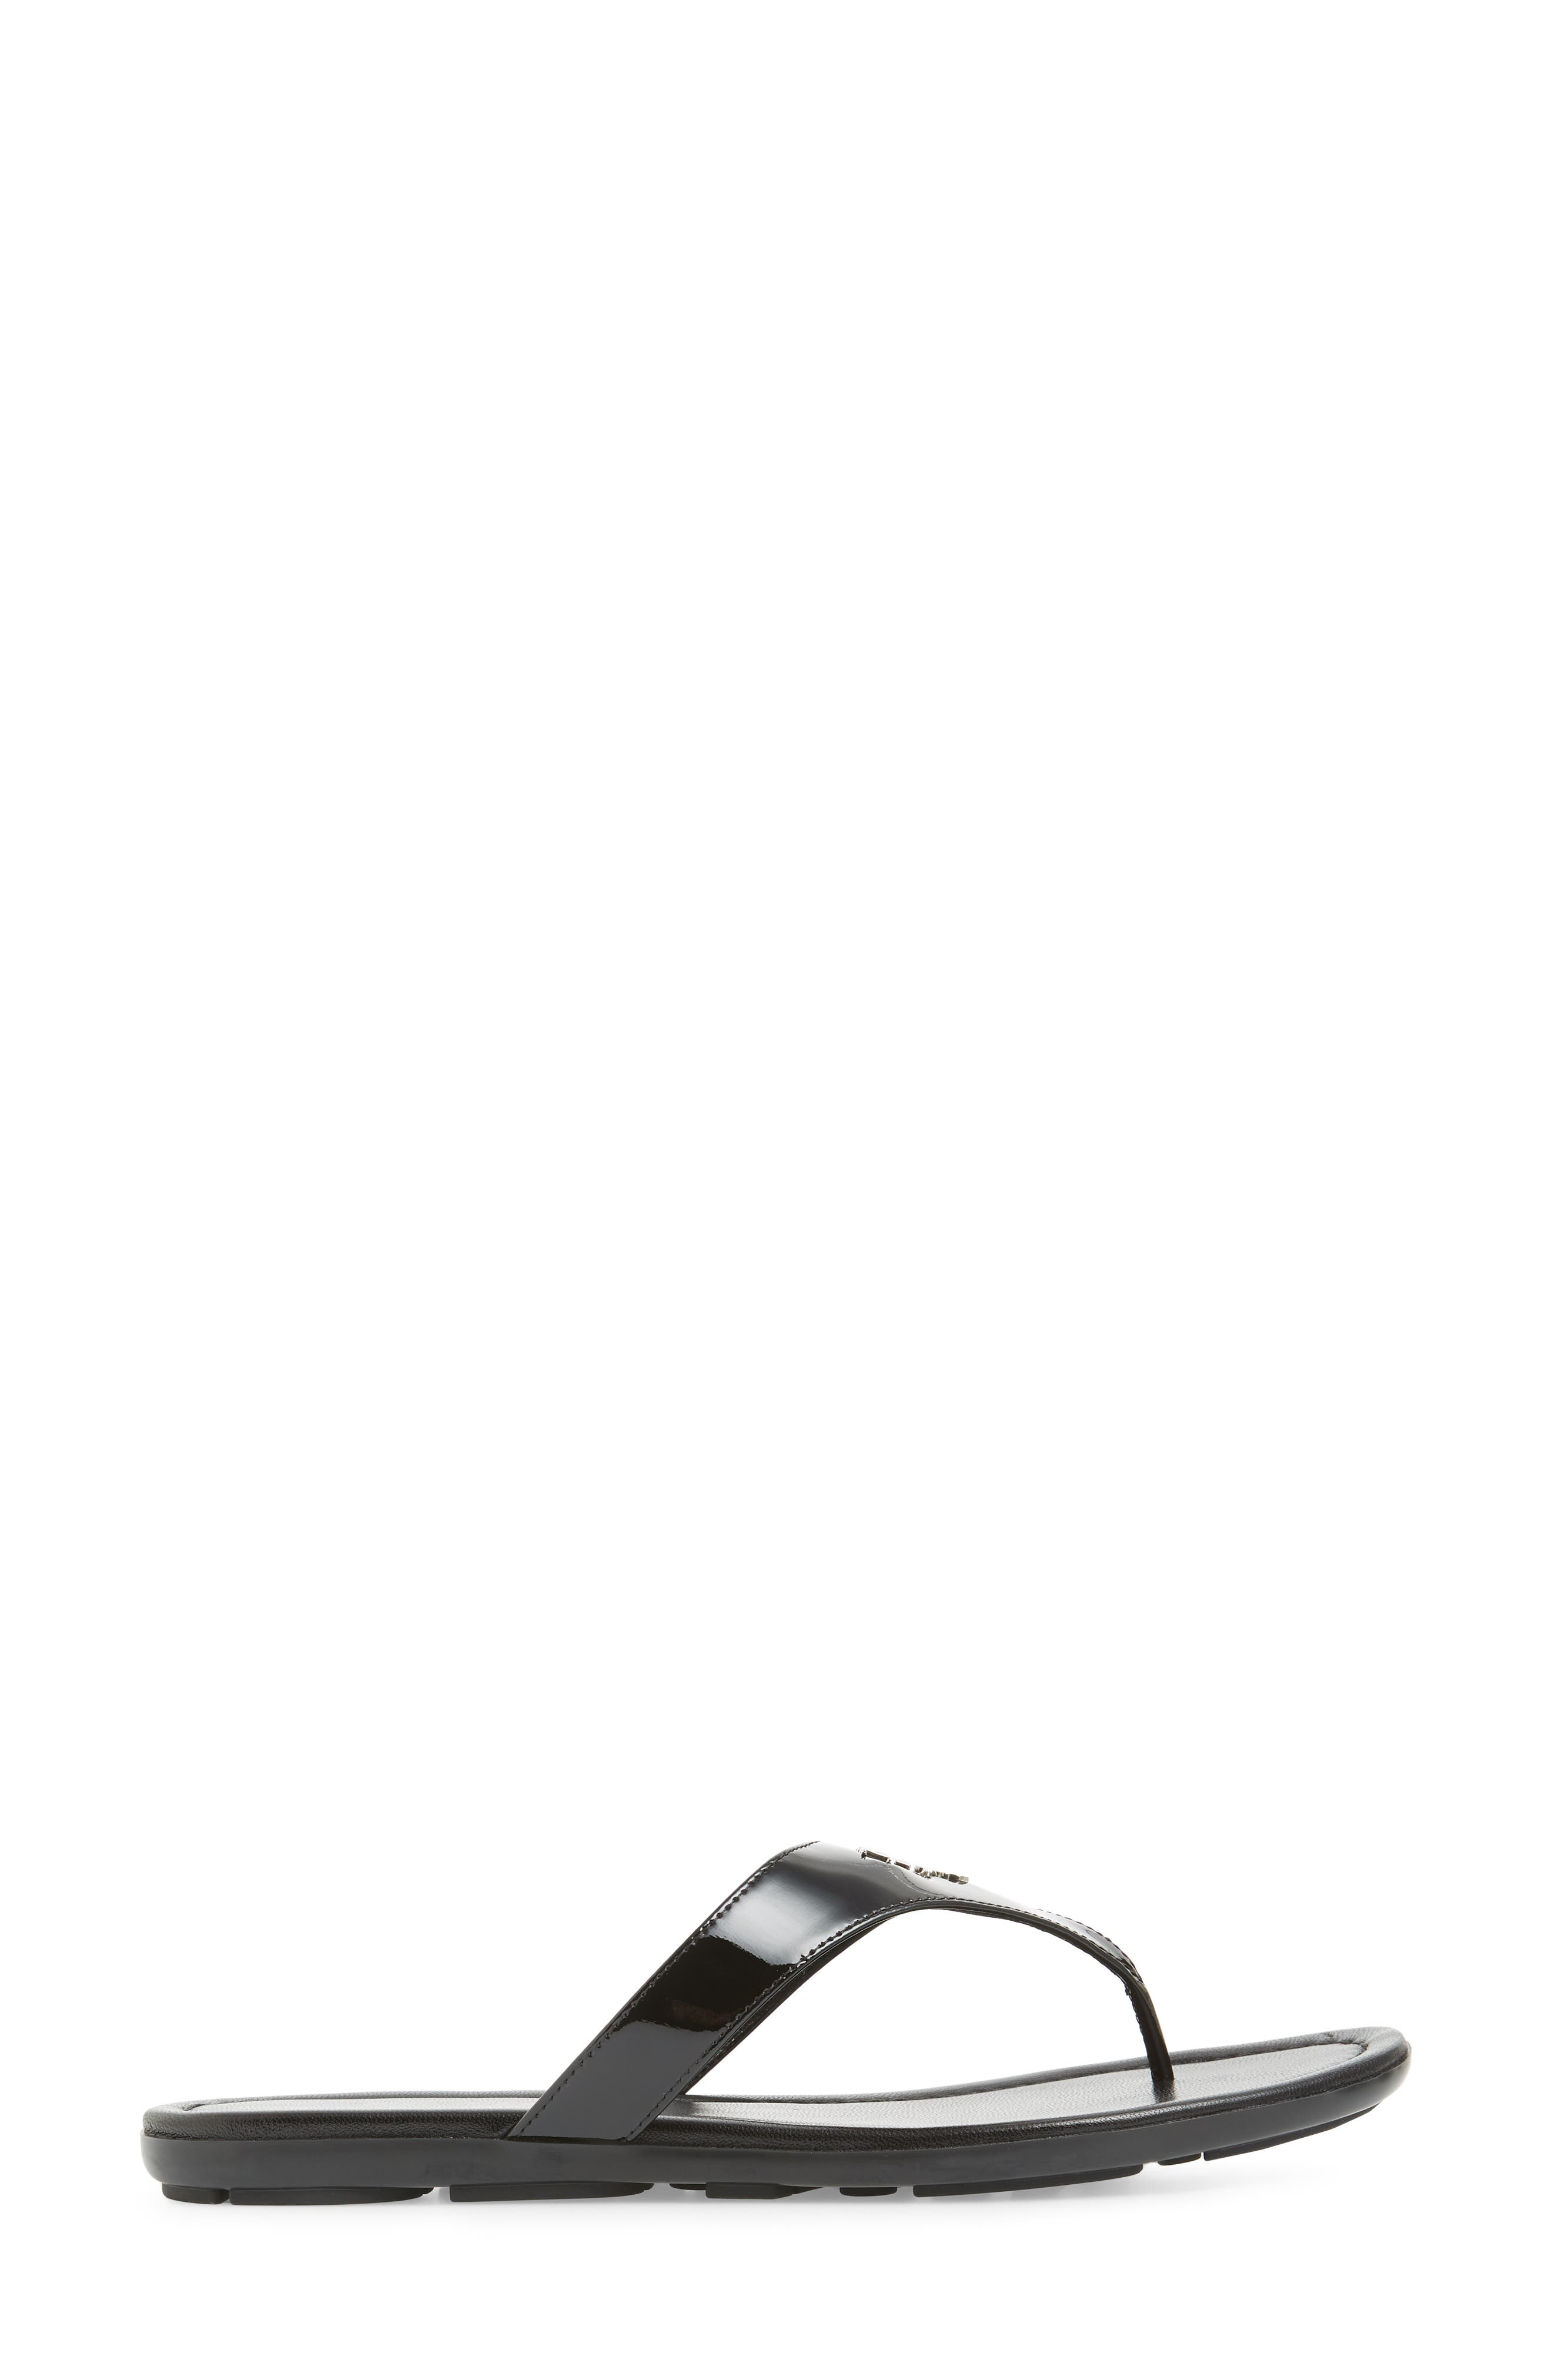 PRADA, Logo Flip Flop, Alternate thumbnail 3, color, BLACK